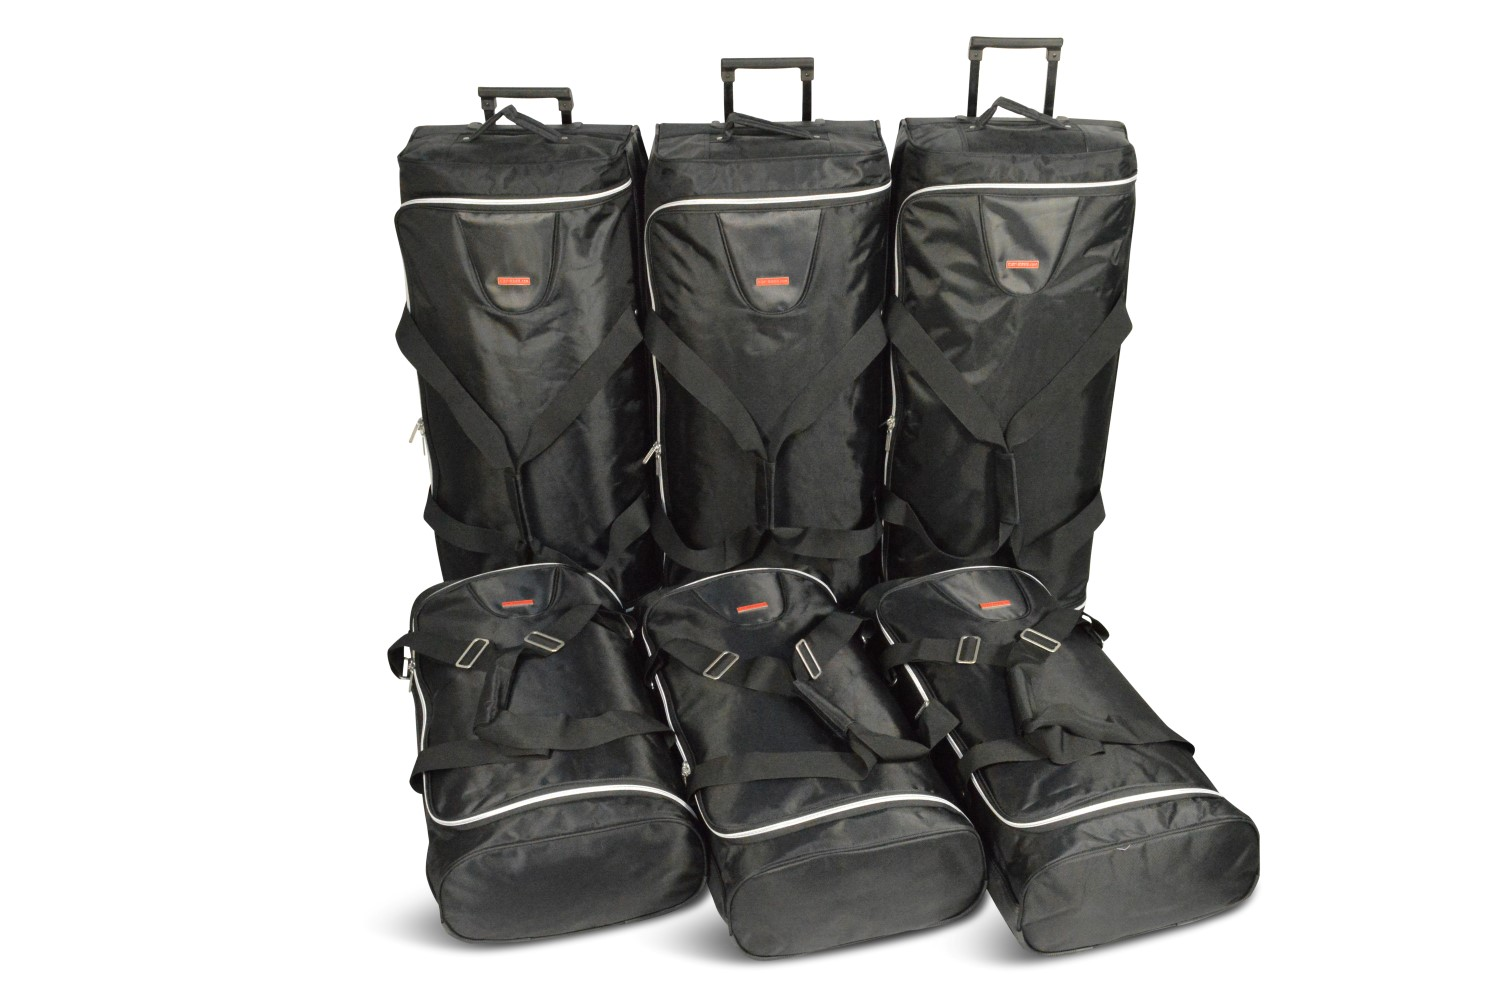 Car-Bags travel bag set